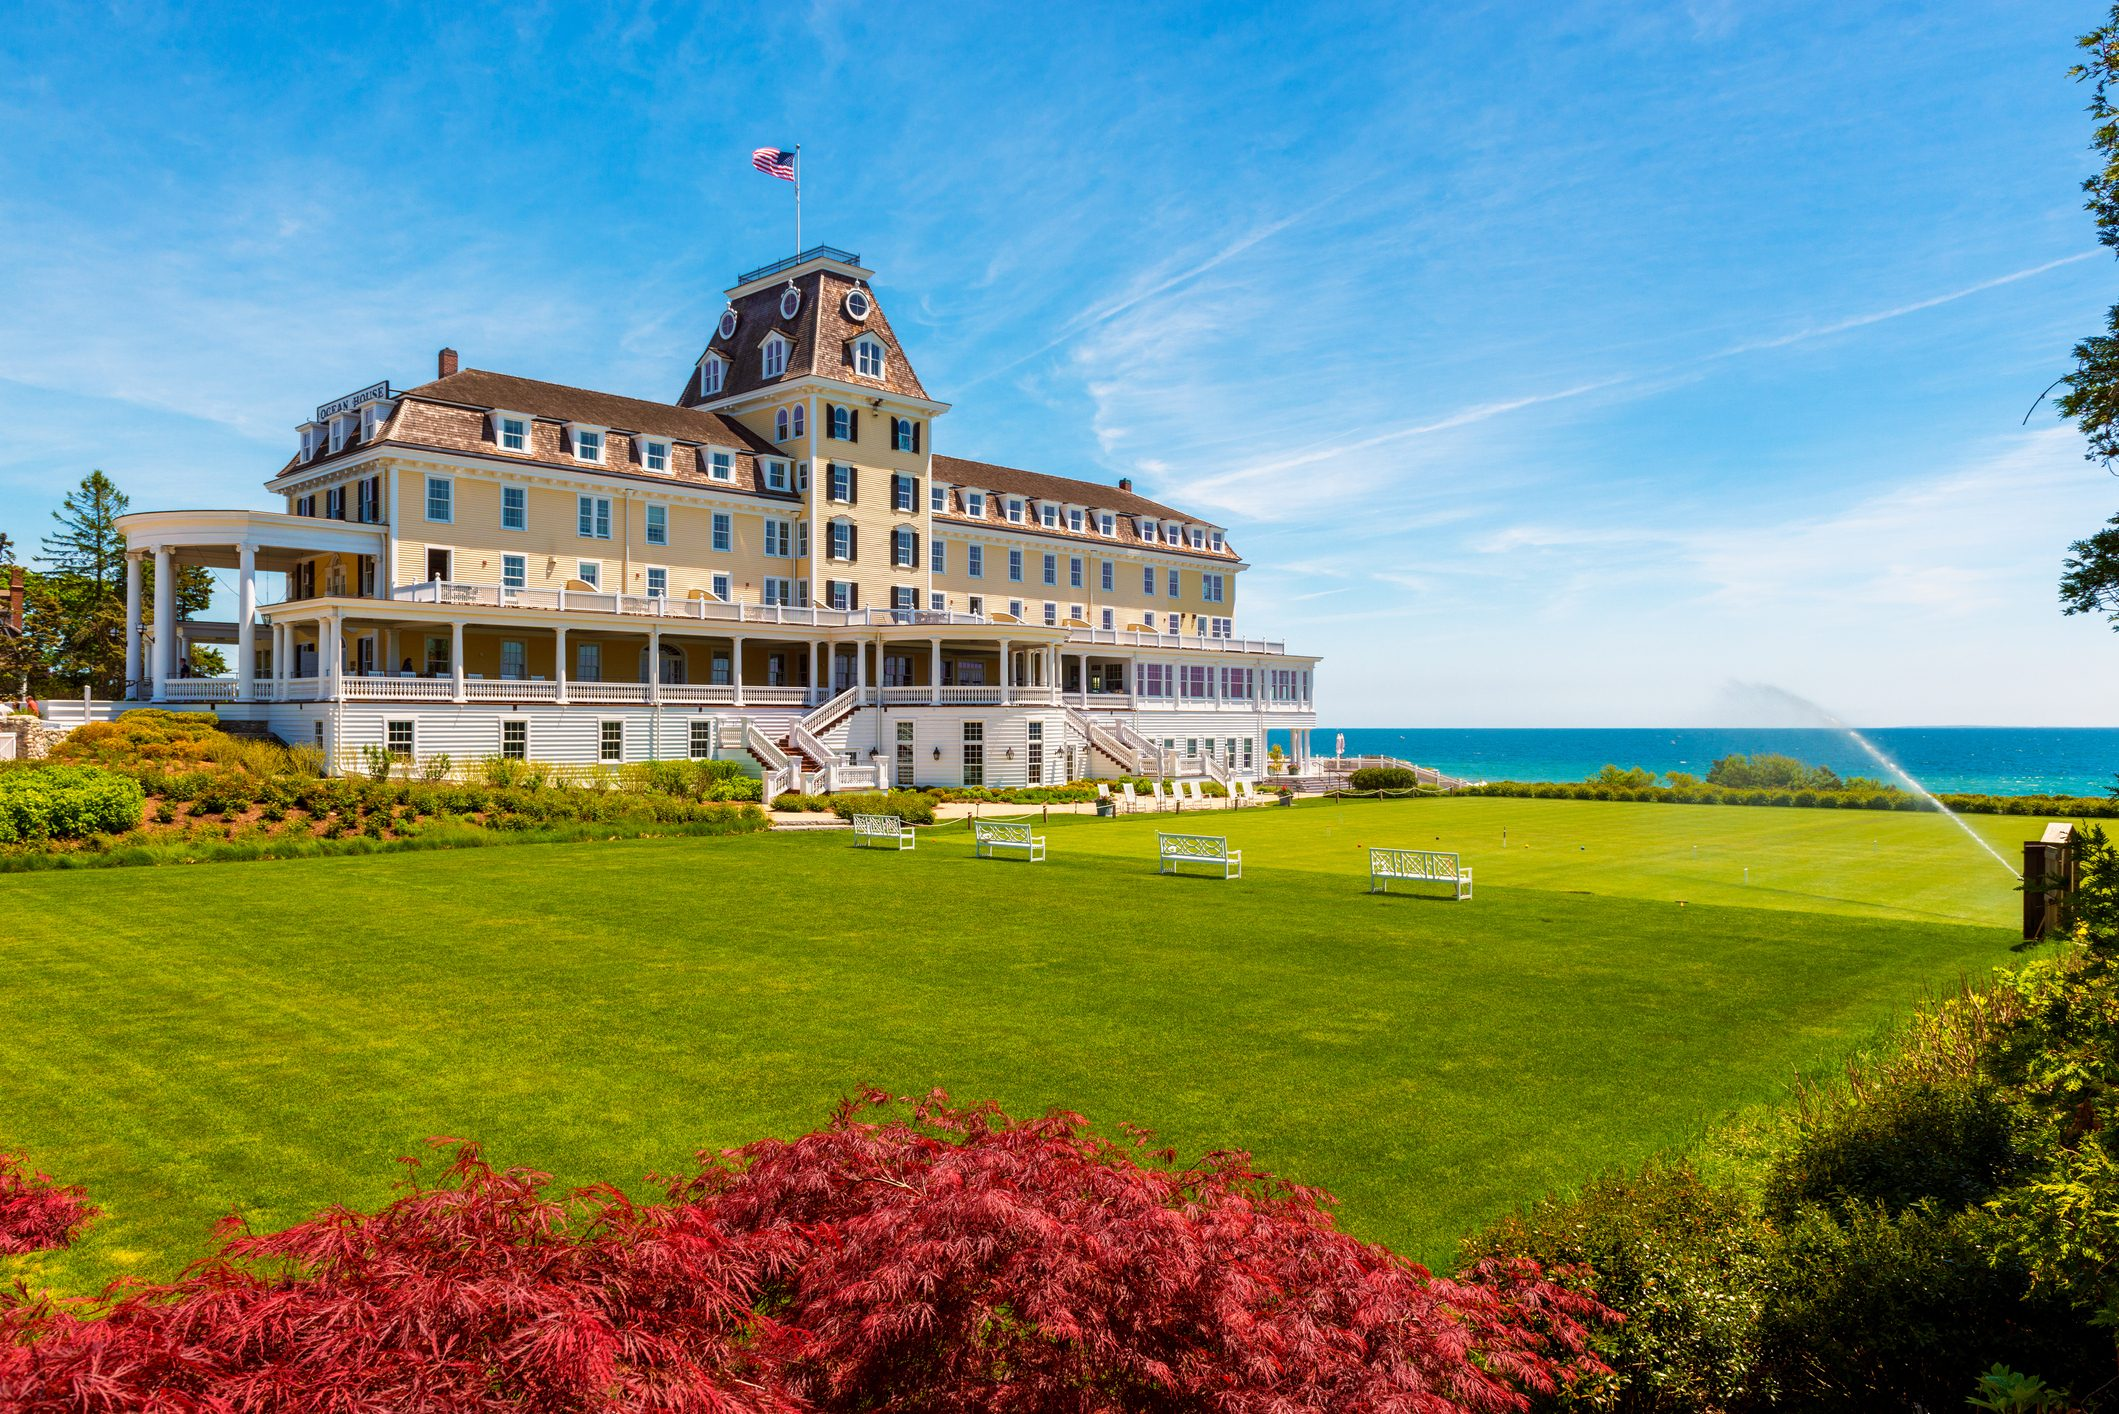 The Ocean House Hotel in Westerly Rhode Island USA